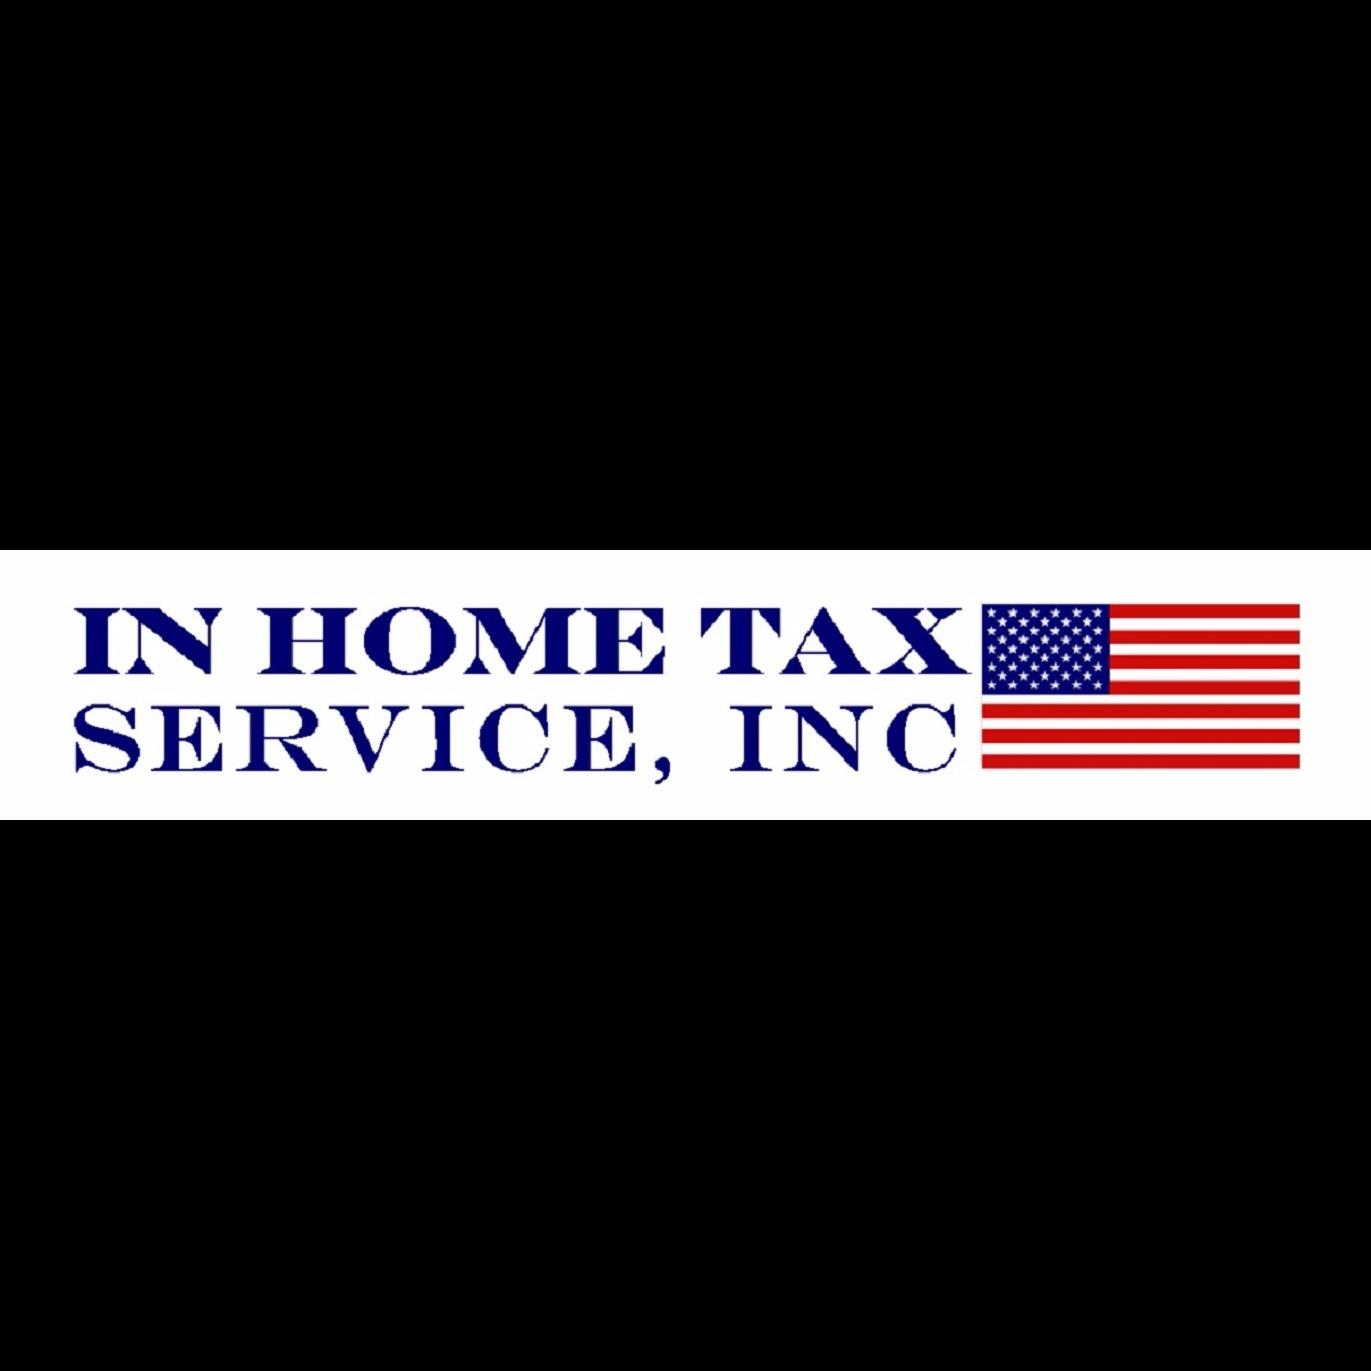 In Home Tax Service, Inc.